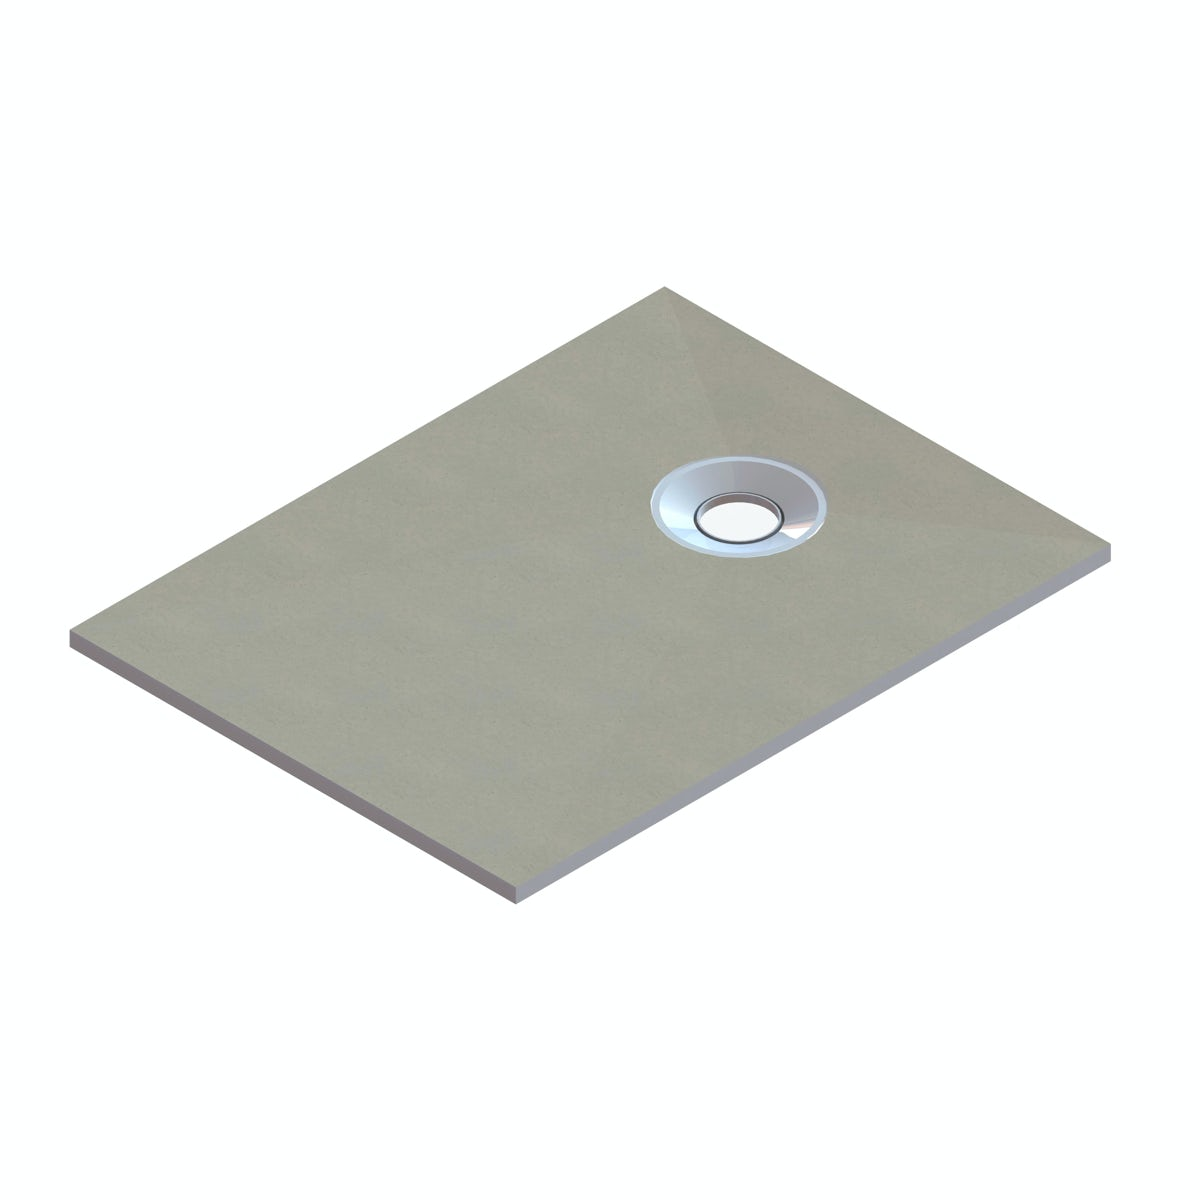 Orchard rectangular wet room tray former with end waste position 1200 x 900